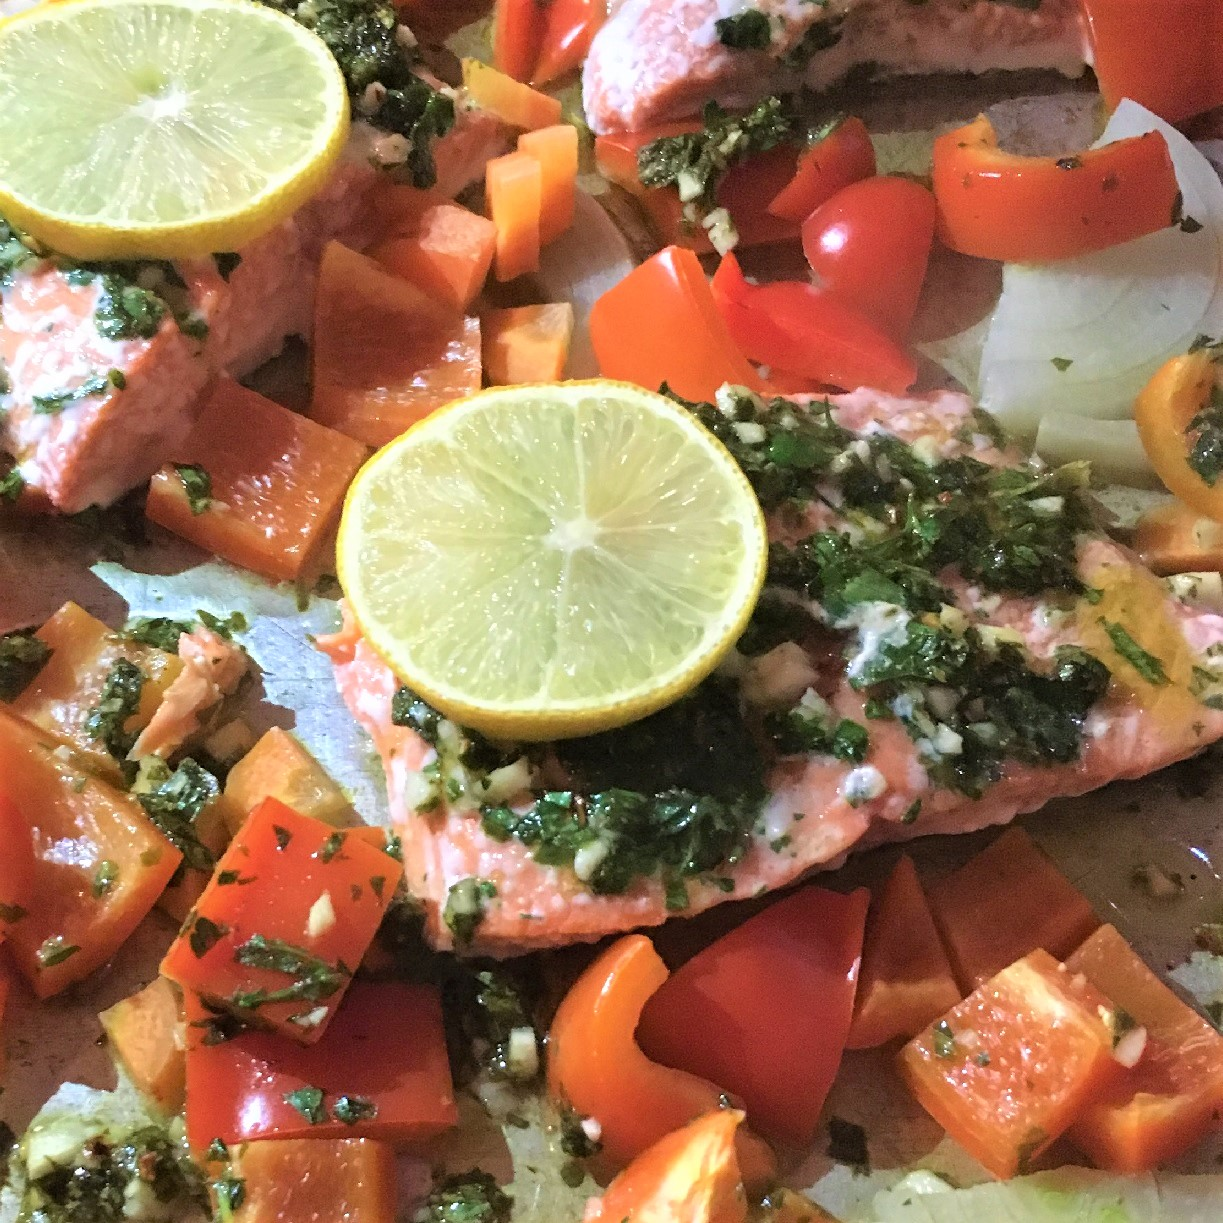 A complete dinner on a sheet pan, with salmon, bell peppers, garlic, lemon, and herbs